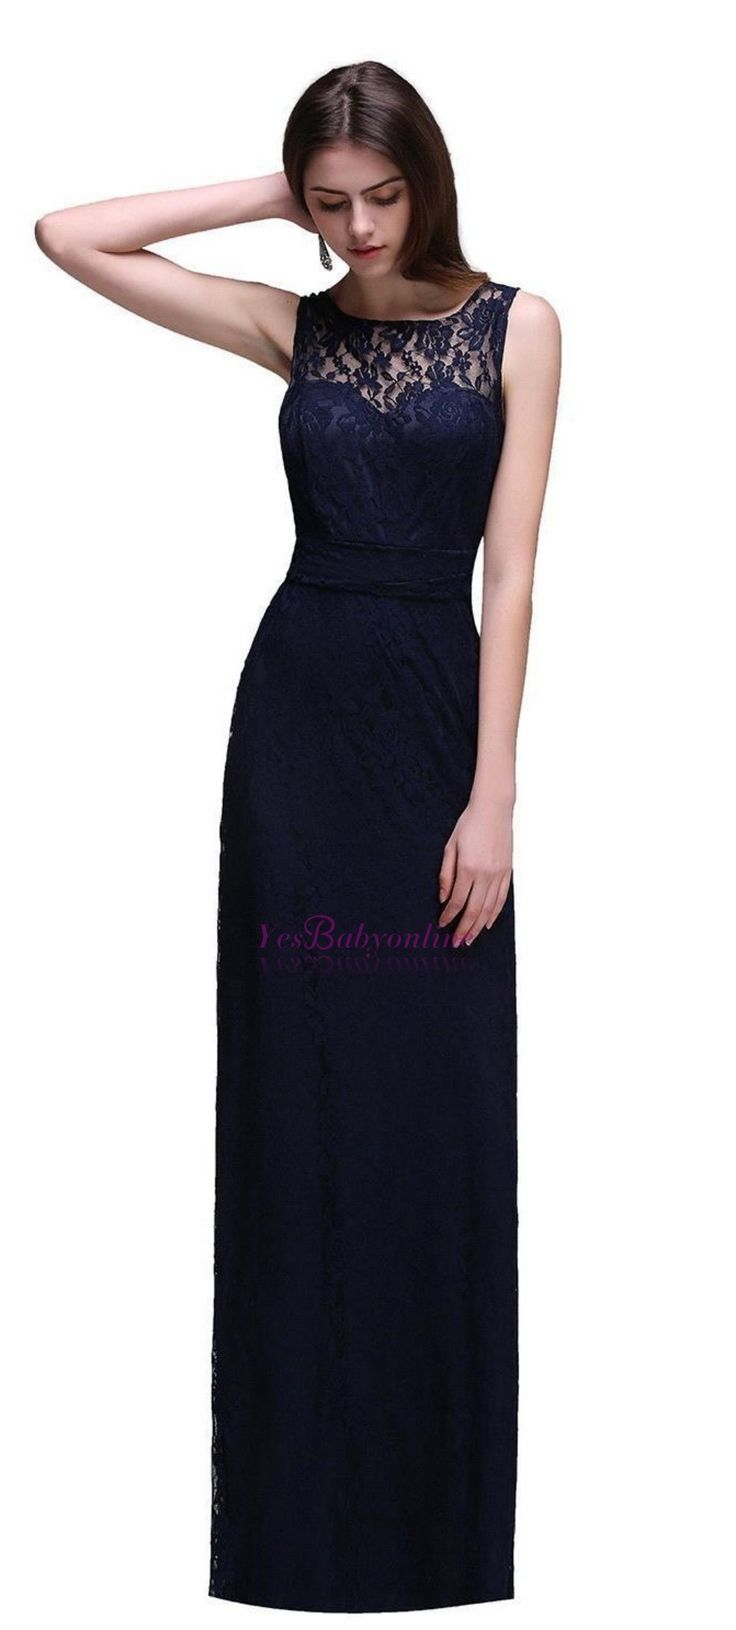 Best 25+ Navy lace bridesmaid dress ideas on Pinterest